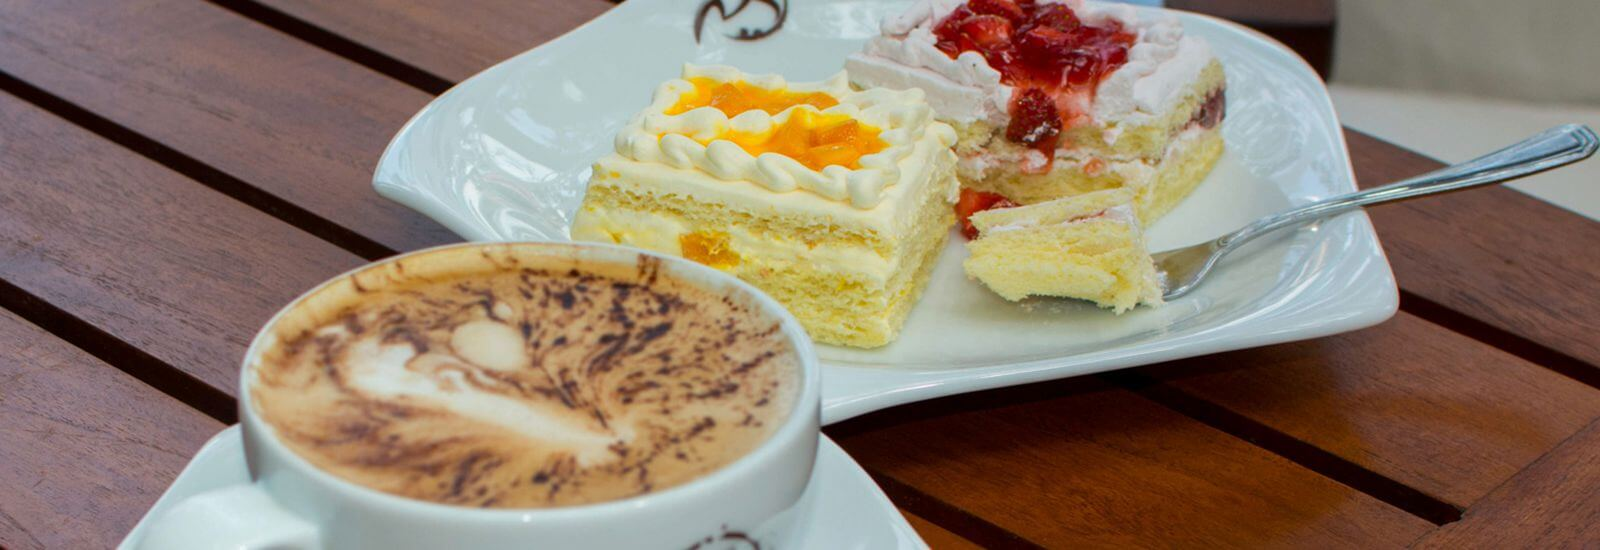 Desserts and Coffee at Cafe M in Mahaweli Reach Hotel